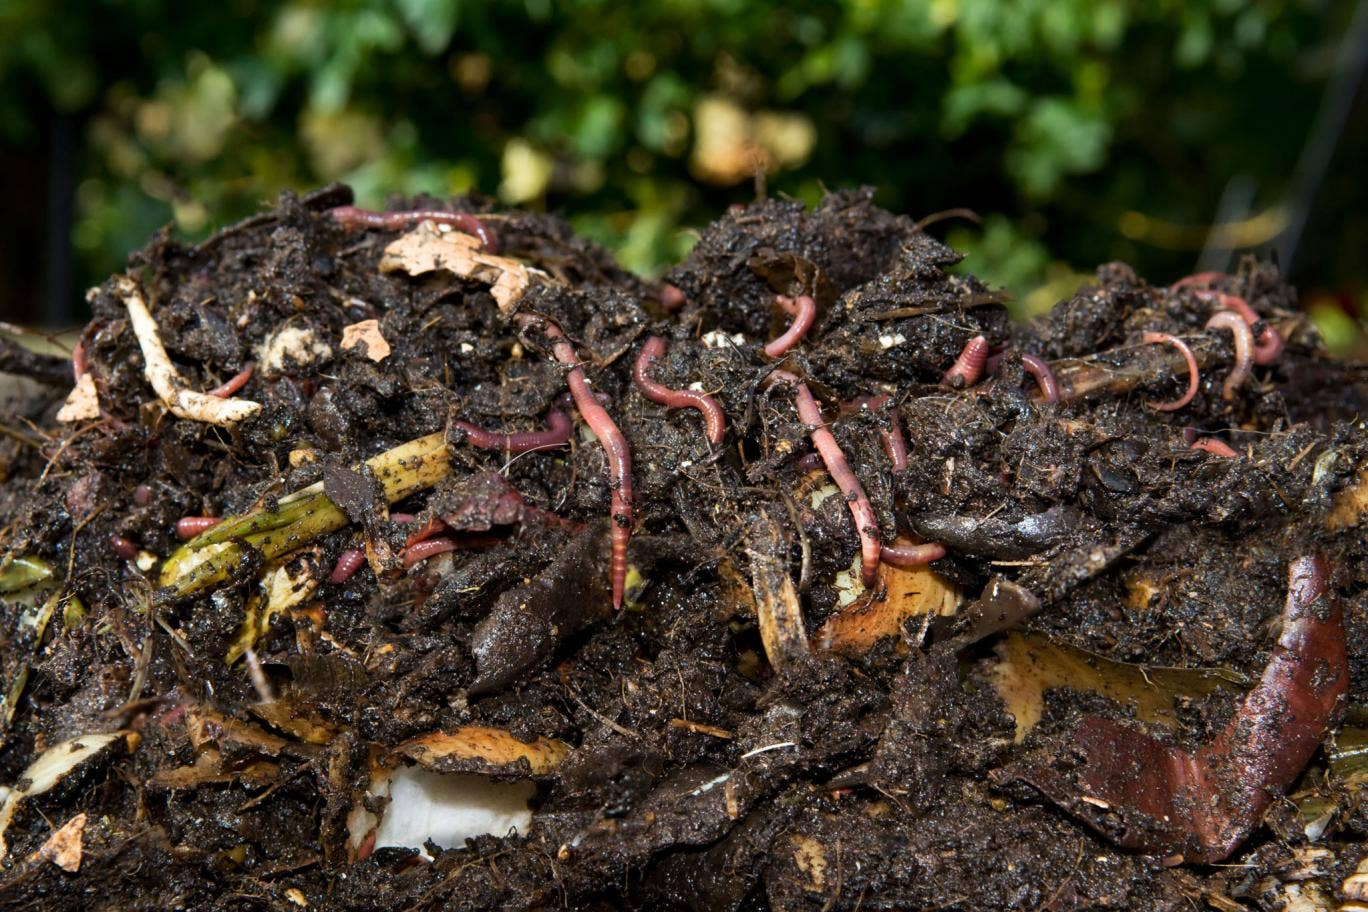 Freshly-dug homemade compost full of worms